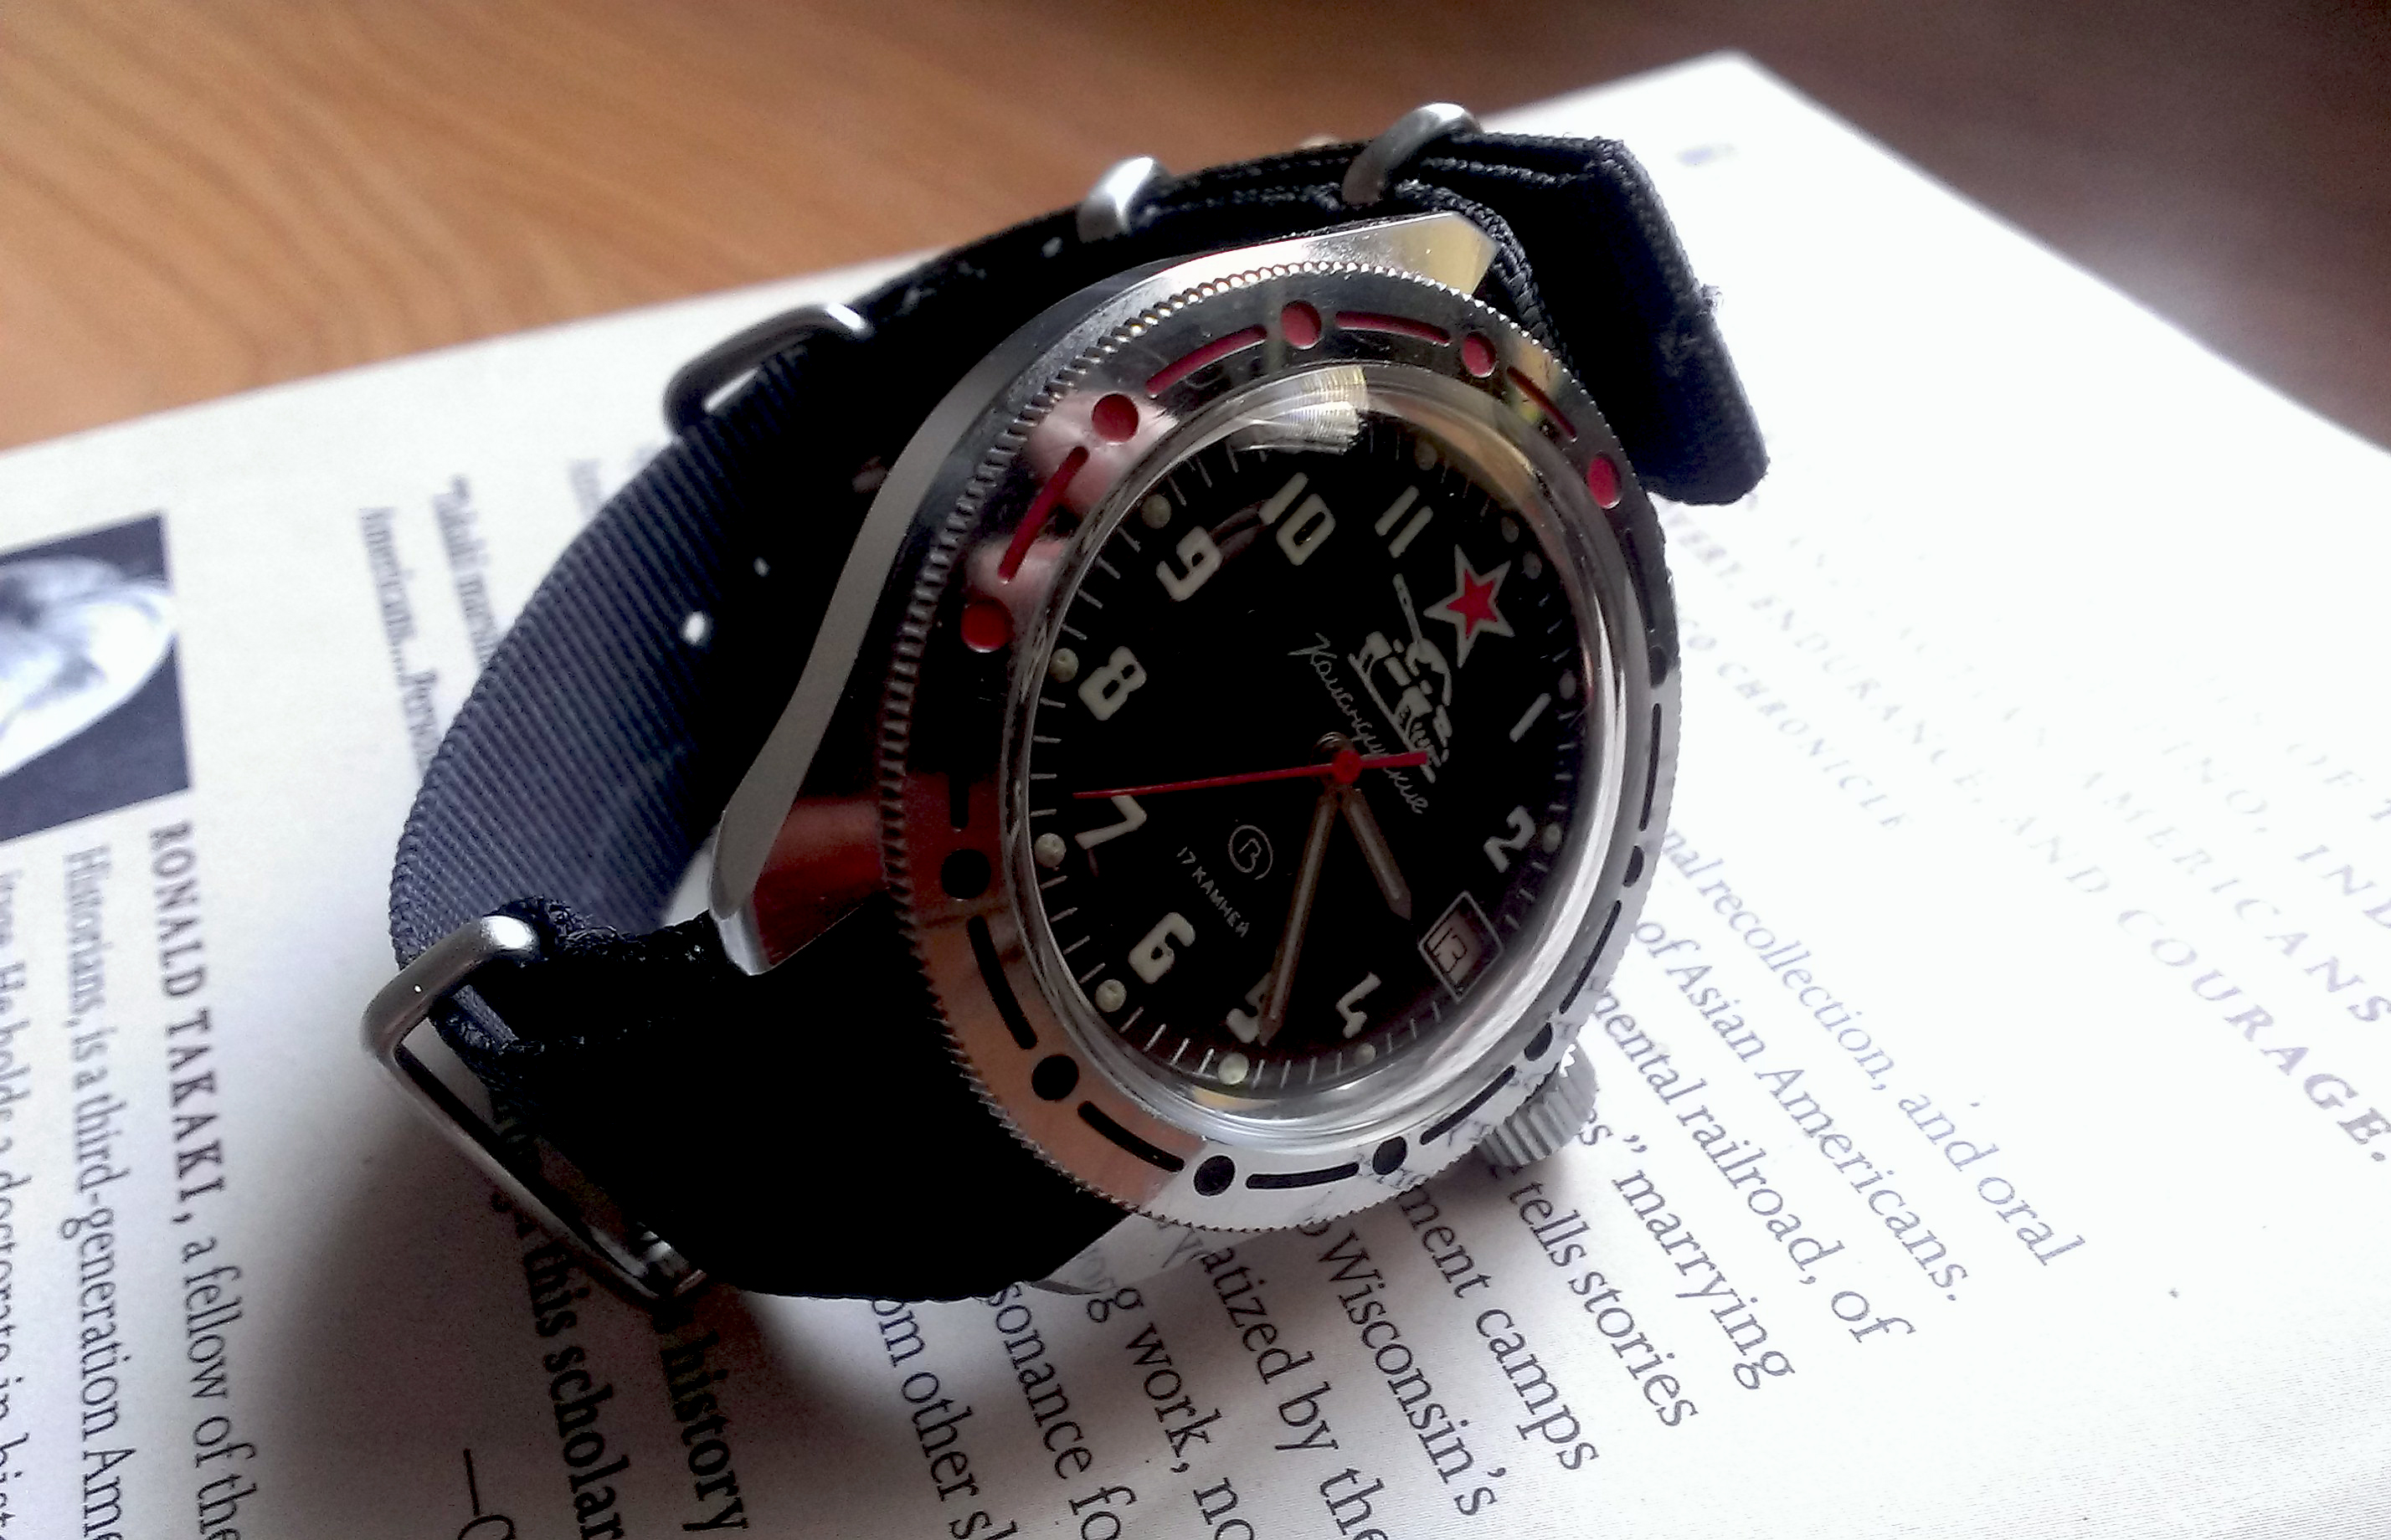 ap featured engagement lead gear blog aatos swiss eeeeeeeeeeee watches patrol omega category